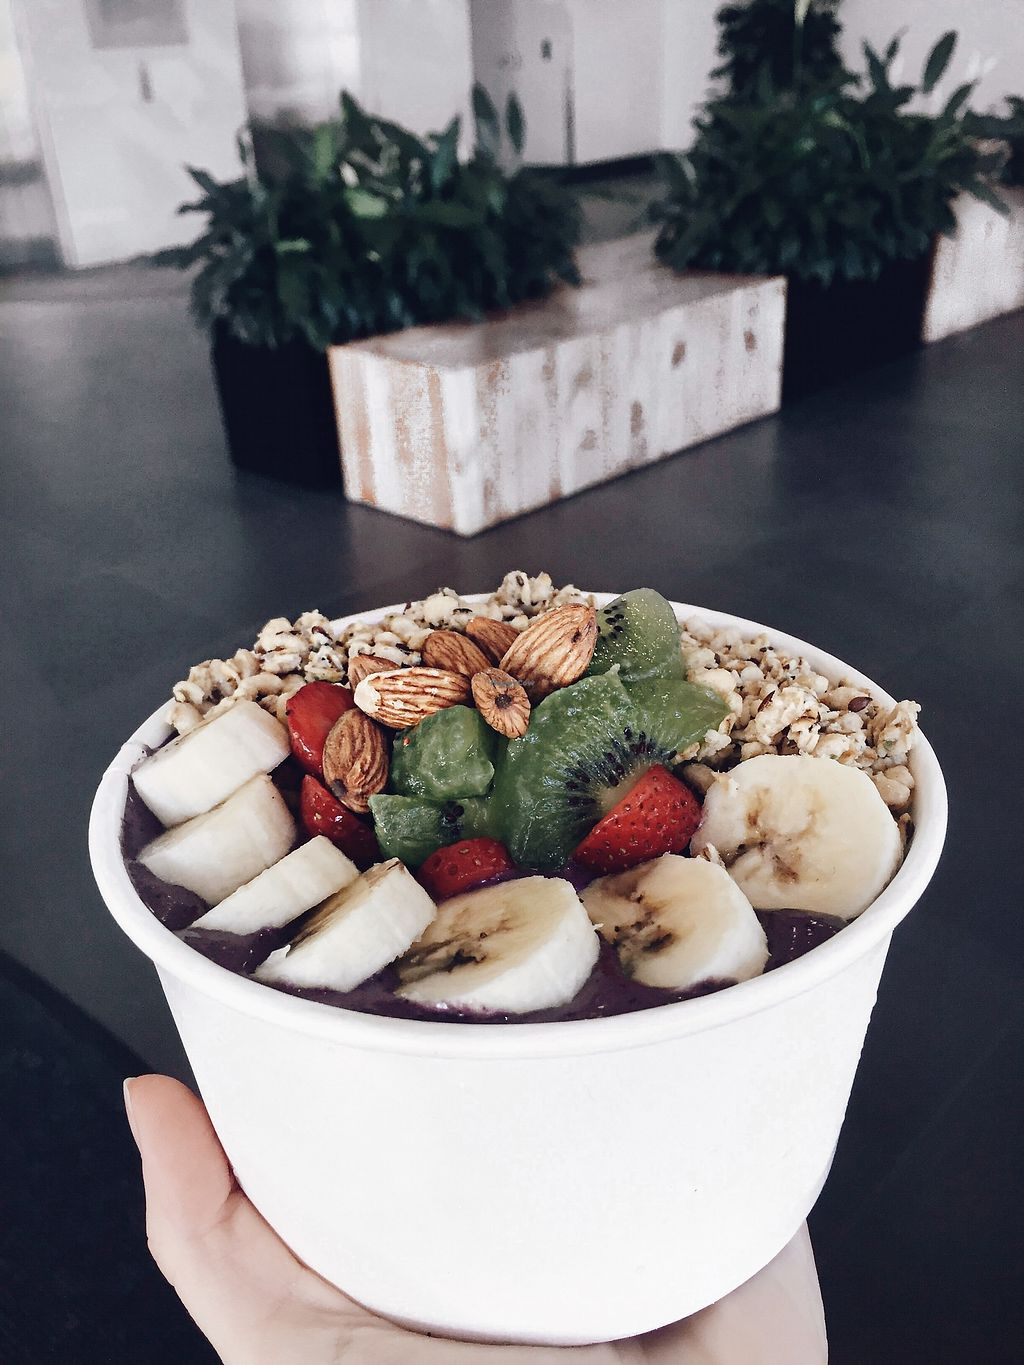 """Photo of Body Energy Club  by <a href=""""/members/profile/jileila"""">jileila</a> <br/>VEGAN smoothie bowl! <br/> November 18, 2017  - <a href='/contact/abuse/image/105385/326623'>Report</a>"""